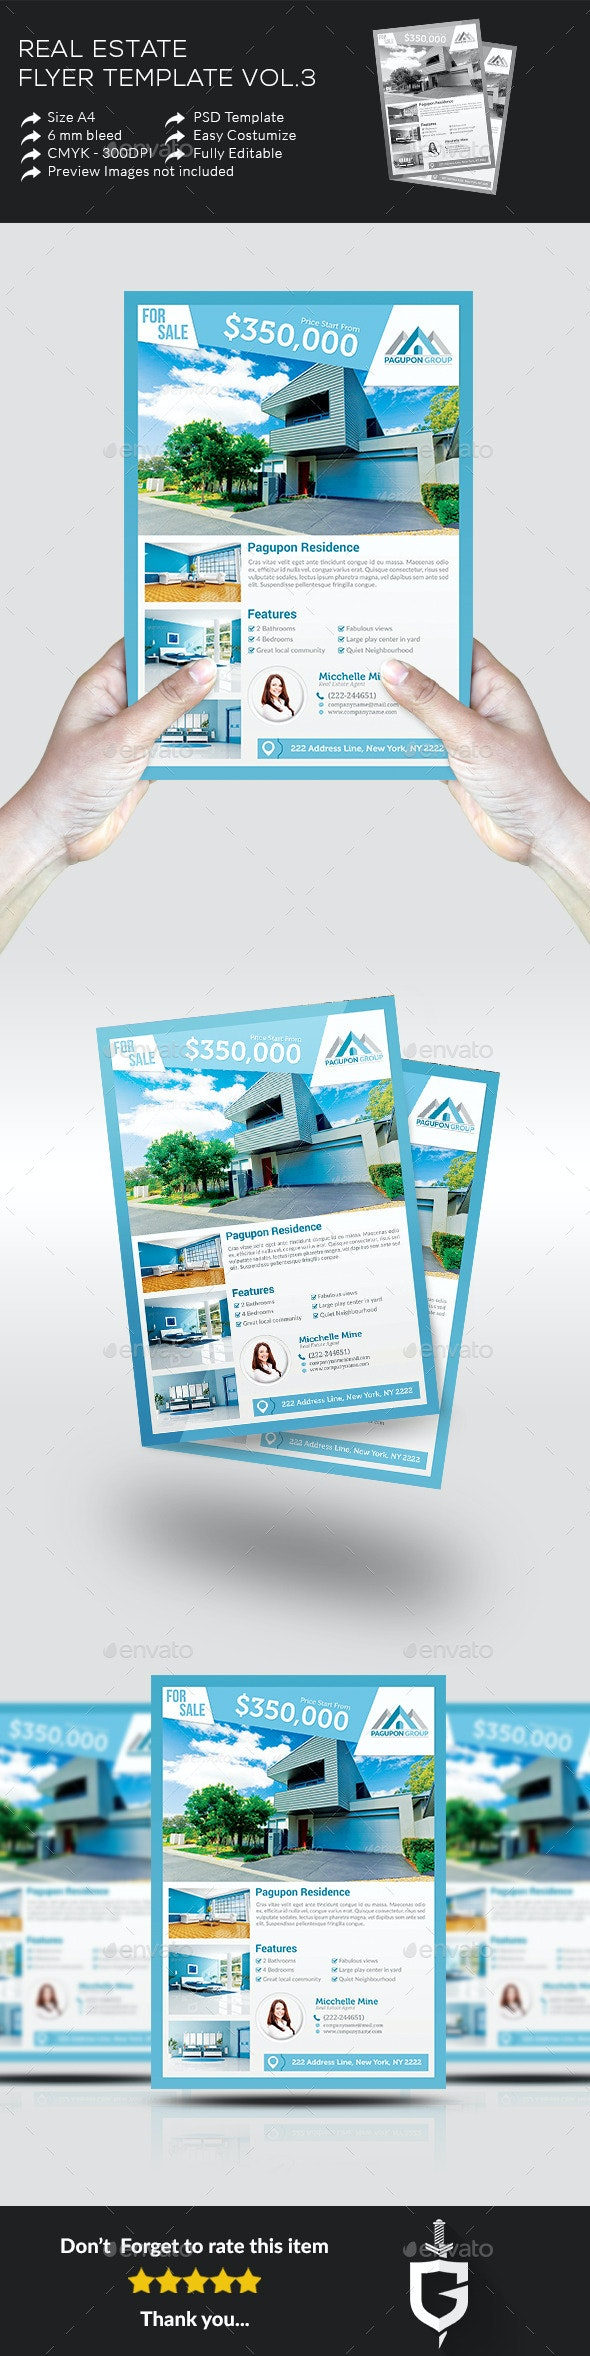 Real Estate Flyer Template Vol.3 - Commerce Flyers